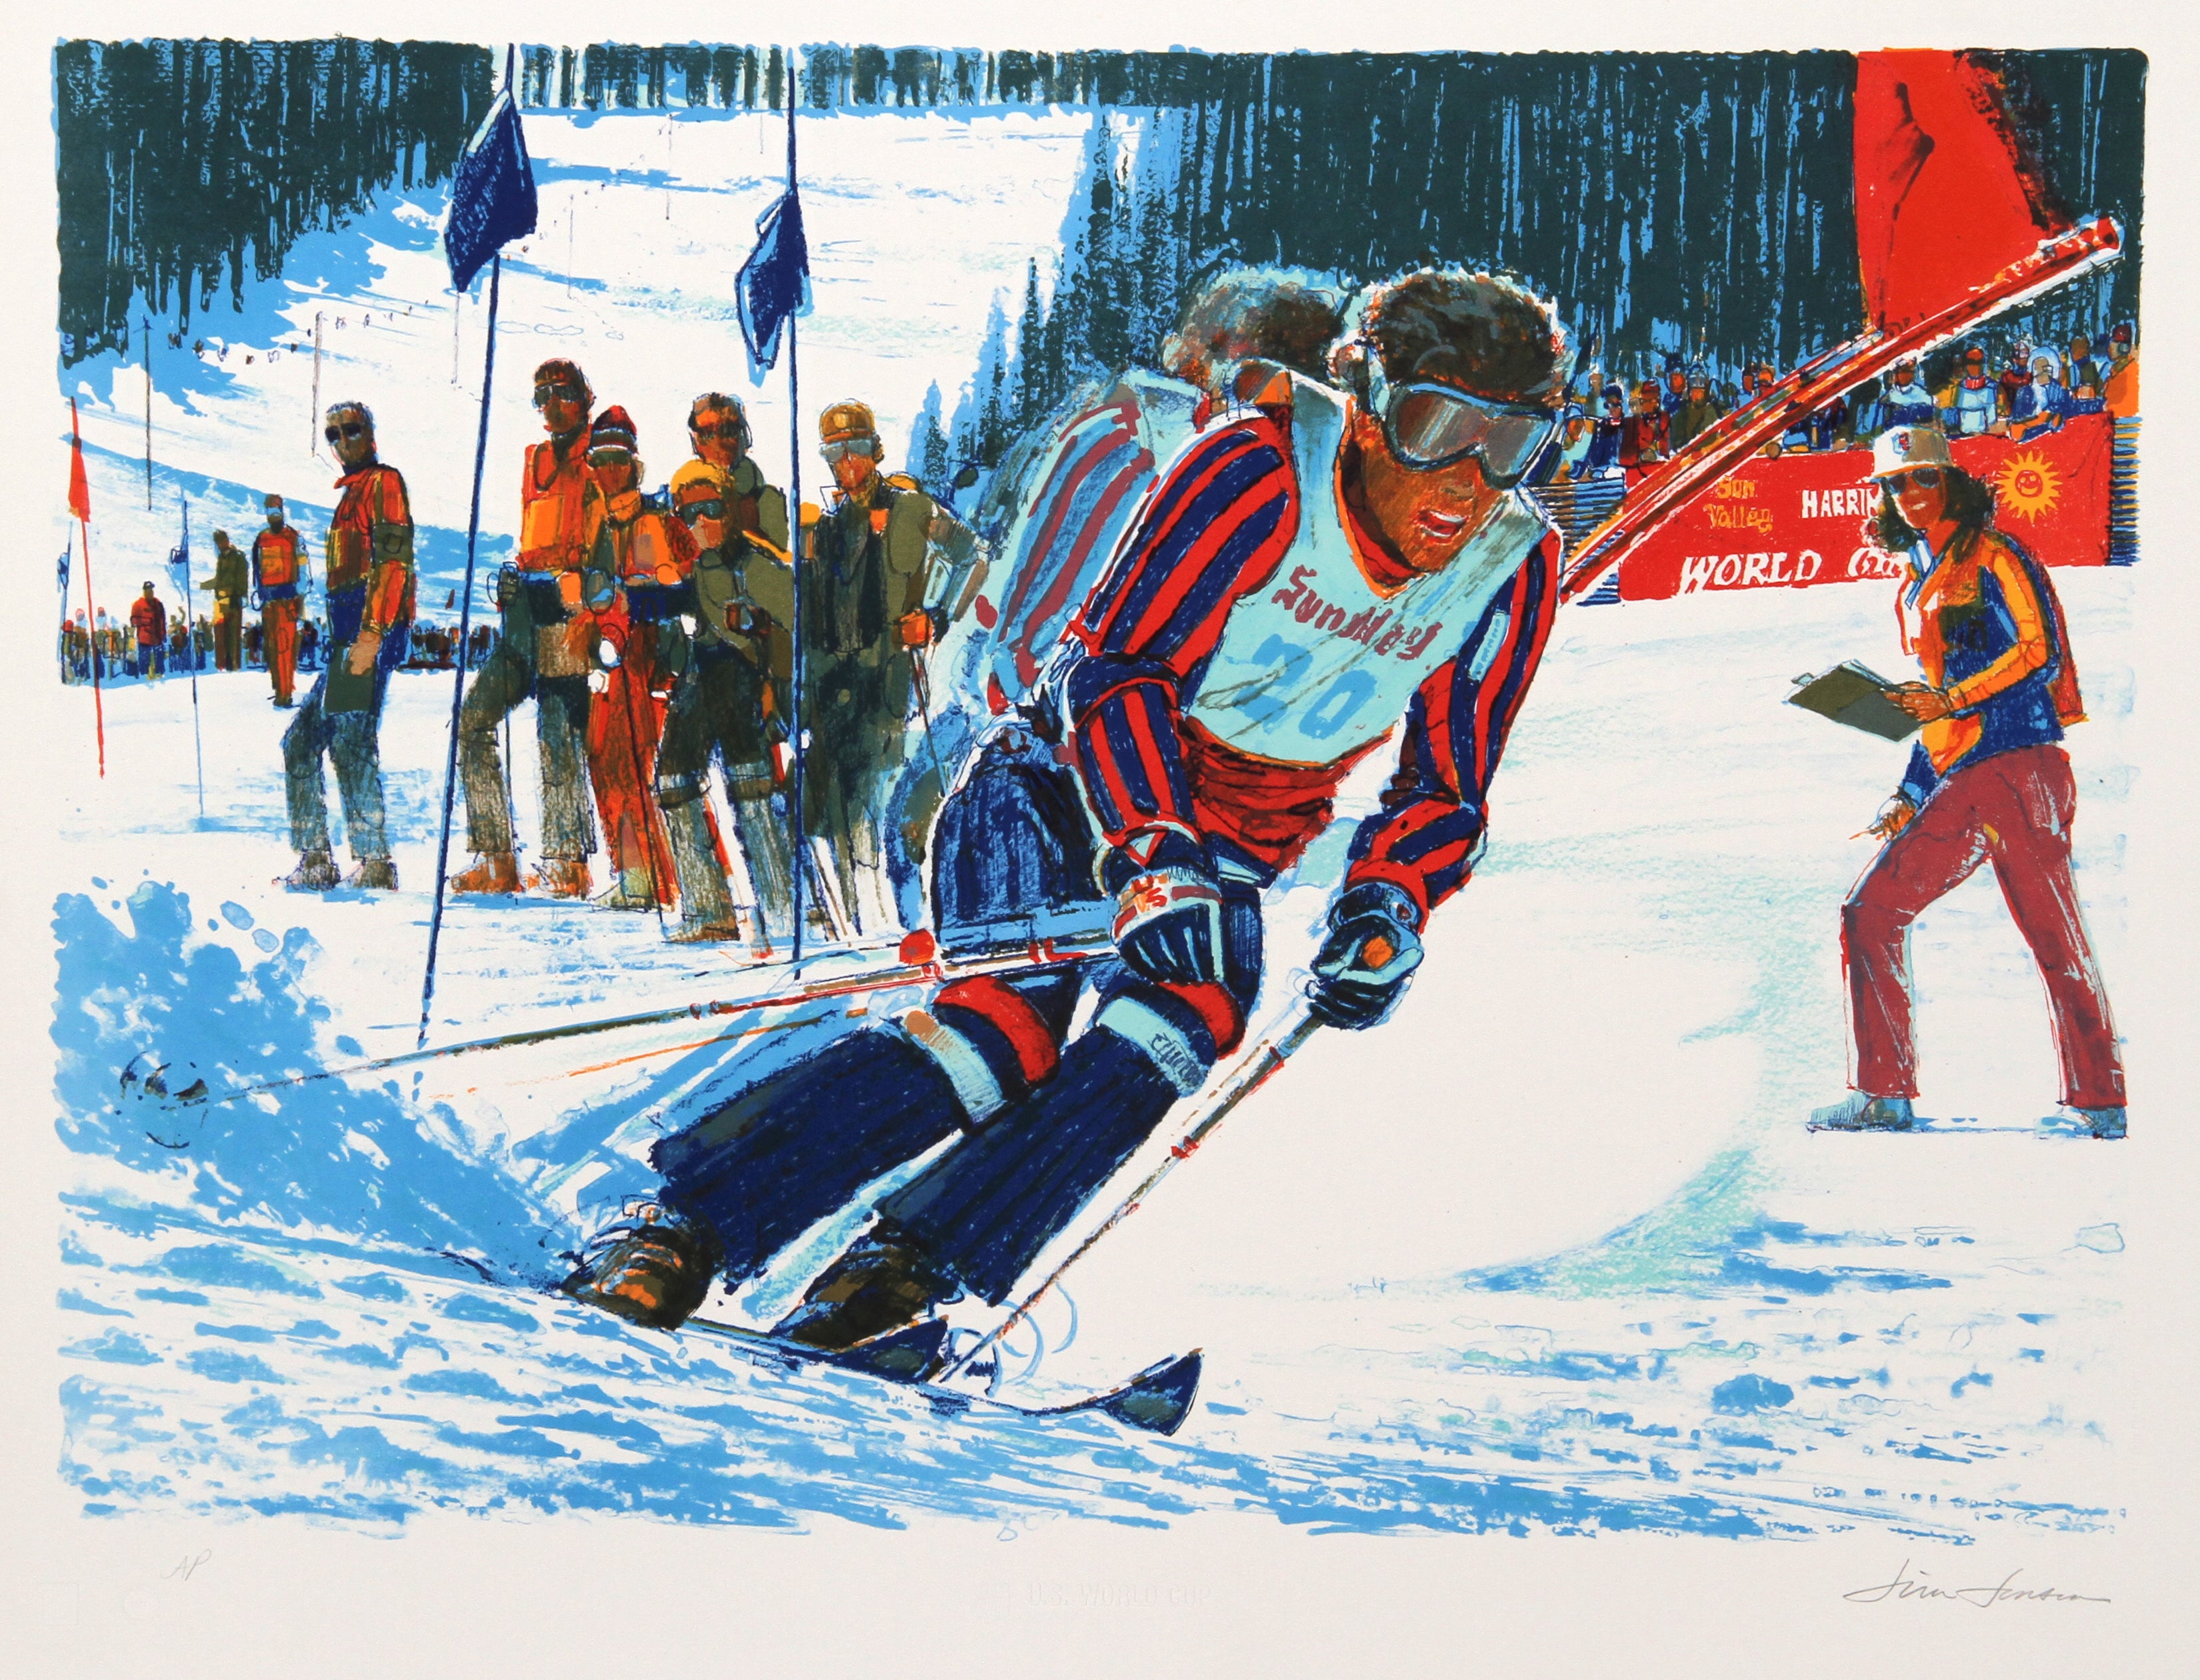 Skiing, World Cup